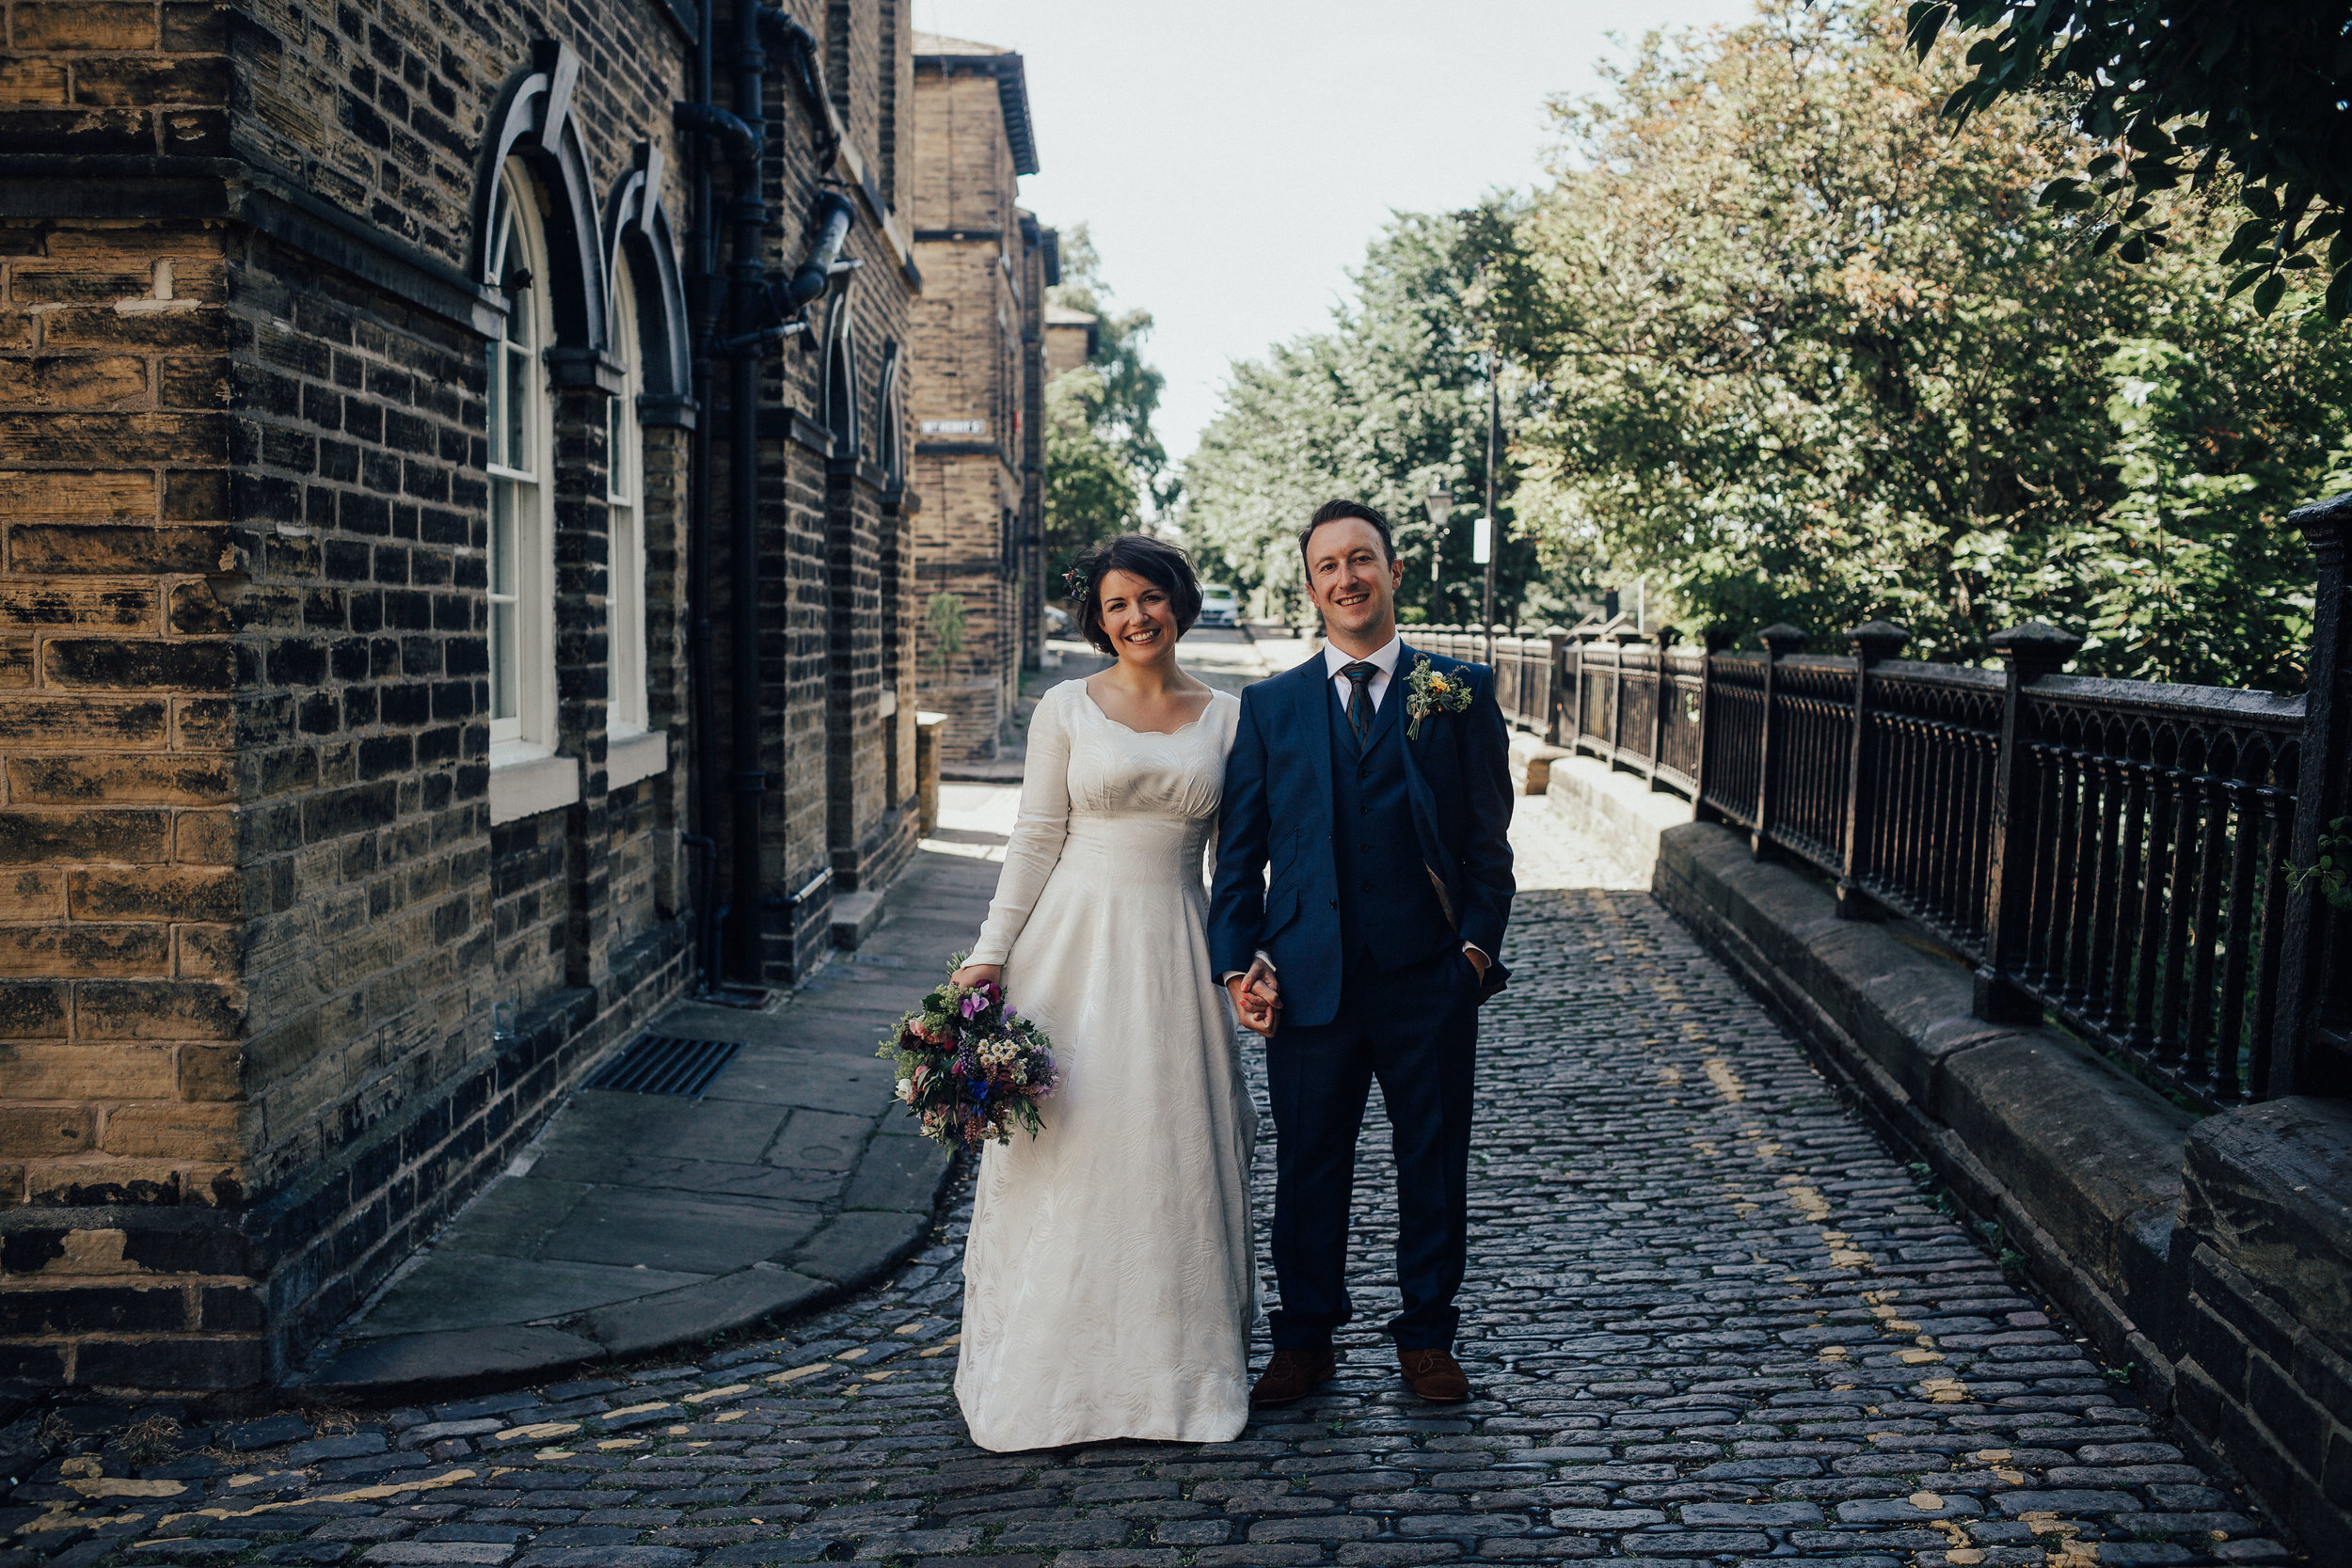 VICTORIA_HALL_SALTAIRE_VINTAGE_YORKSHIRE_WEDDING_PJ_PHILLIPS_PHOTOGRAPHY_64.jpg